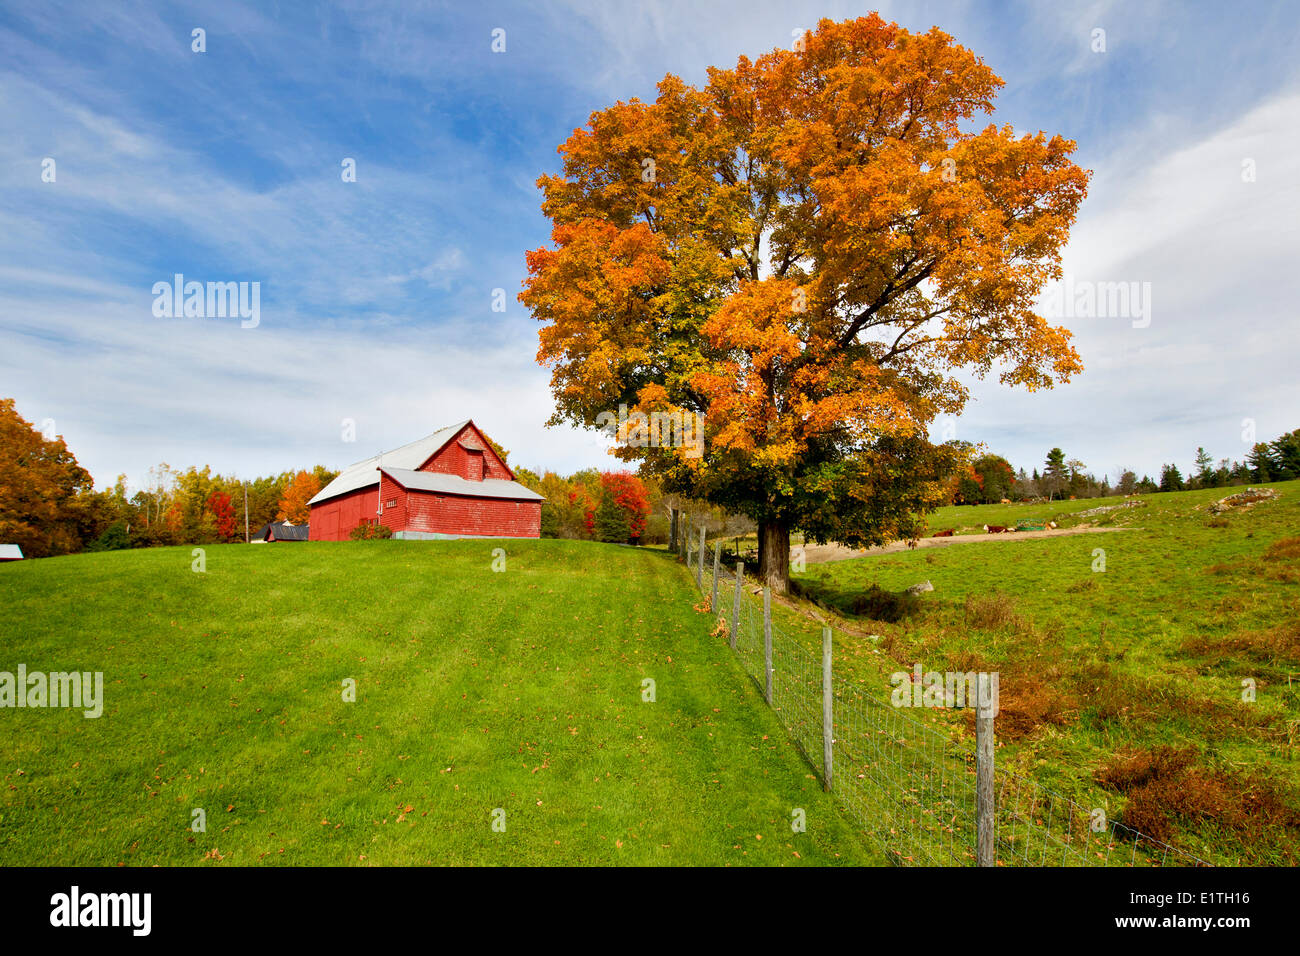 Red barn and Maple Tree in fall foliage, Queensbury, Saint John River, New Brunswick, Canada - Stock Image